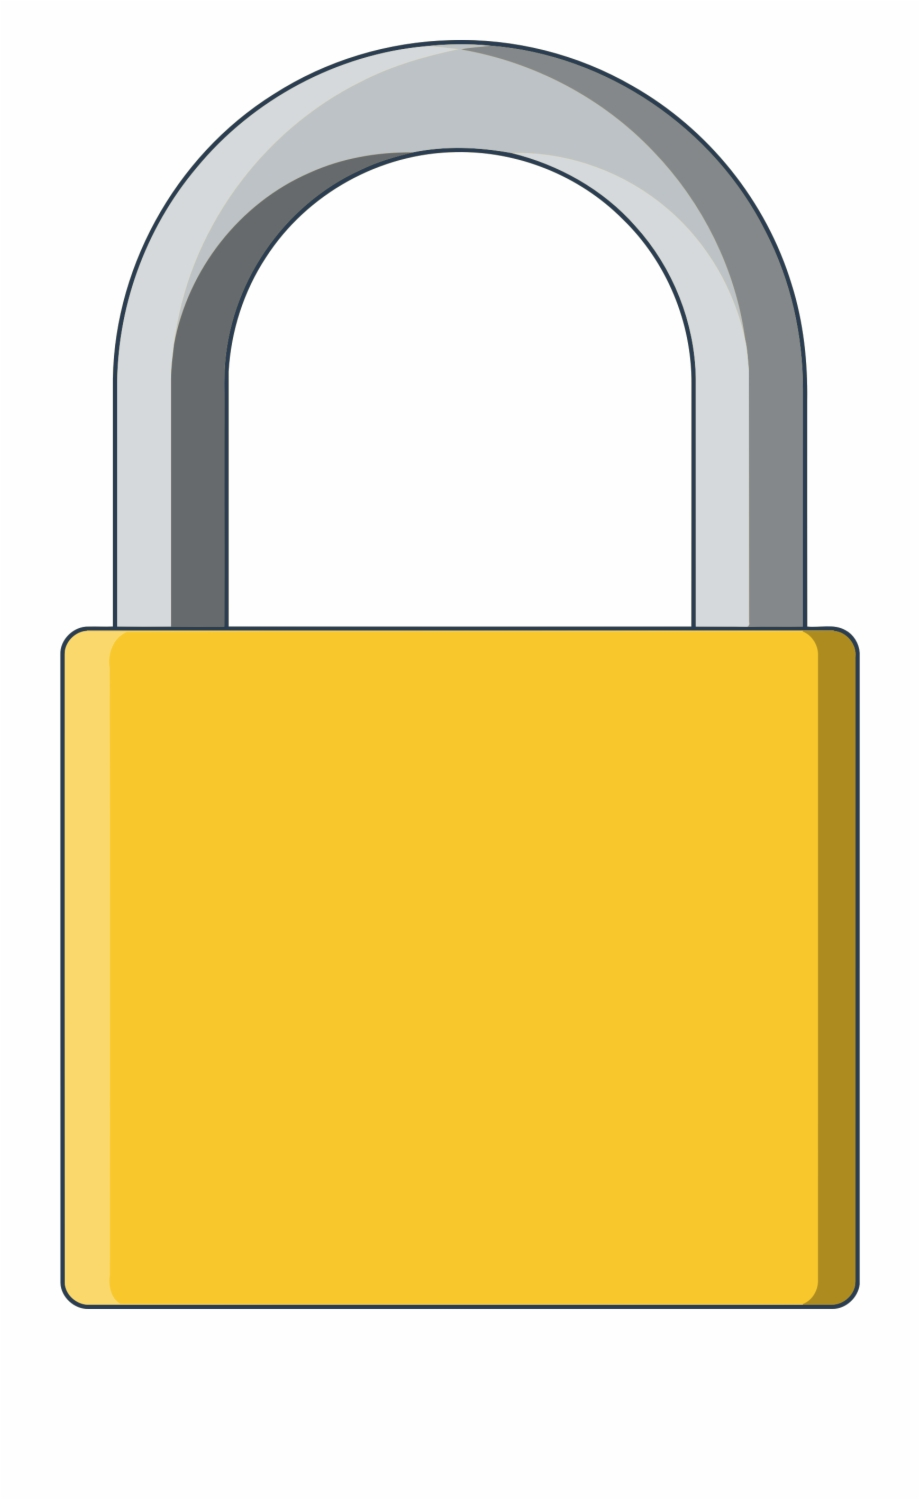 clip art freeuse library Png royalty free library. Lock clipart.